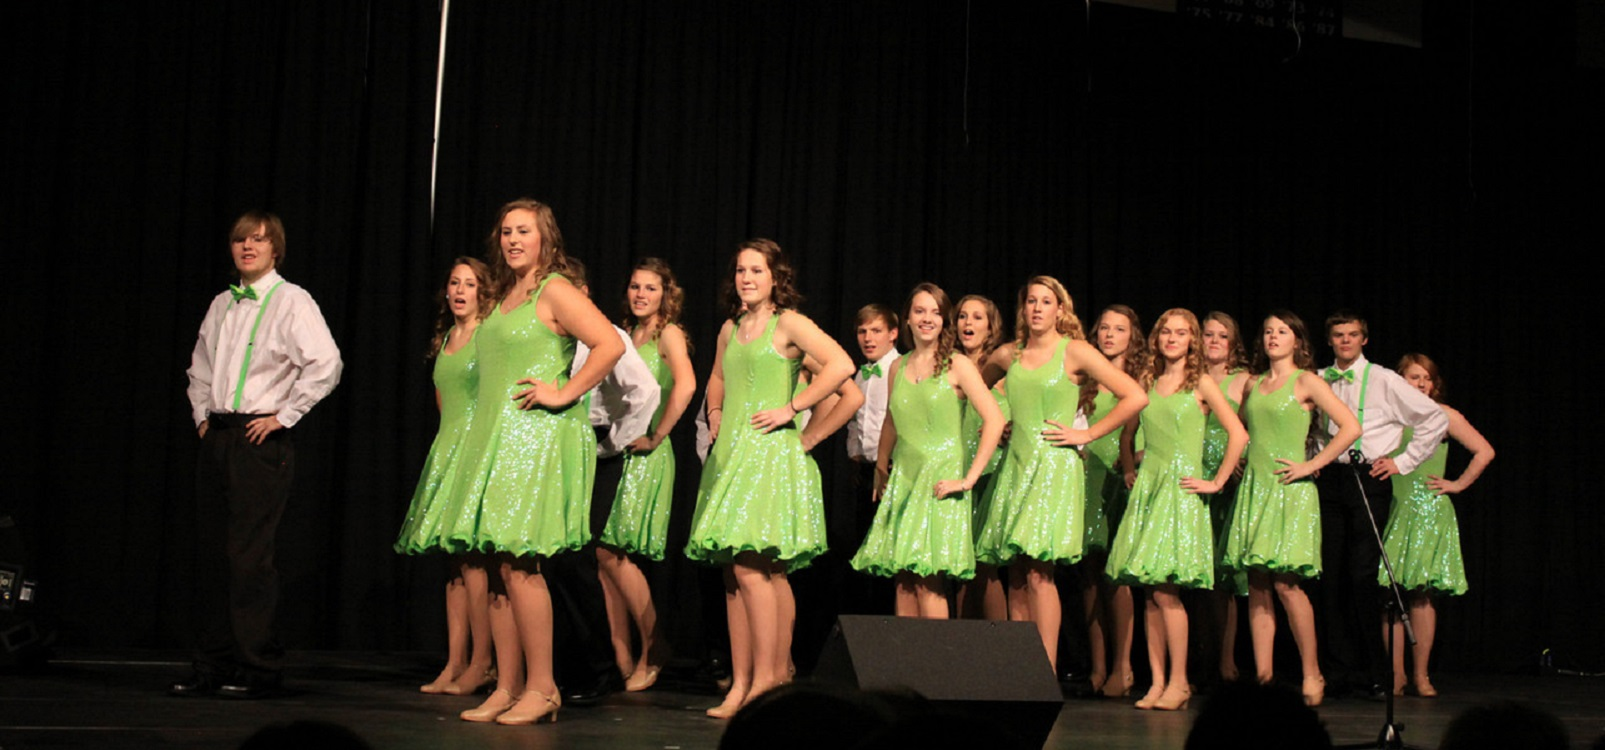 """<div class='slider_caption'> <h1>Hawk Singers</h1> <a class='slider-readmore' href='http://www.hvlhs.org/programs/fine-arts/'>This """"elite"""" group travels to several churches around the area to sing for HVL Sundays.</a> </div>"""